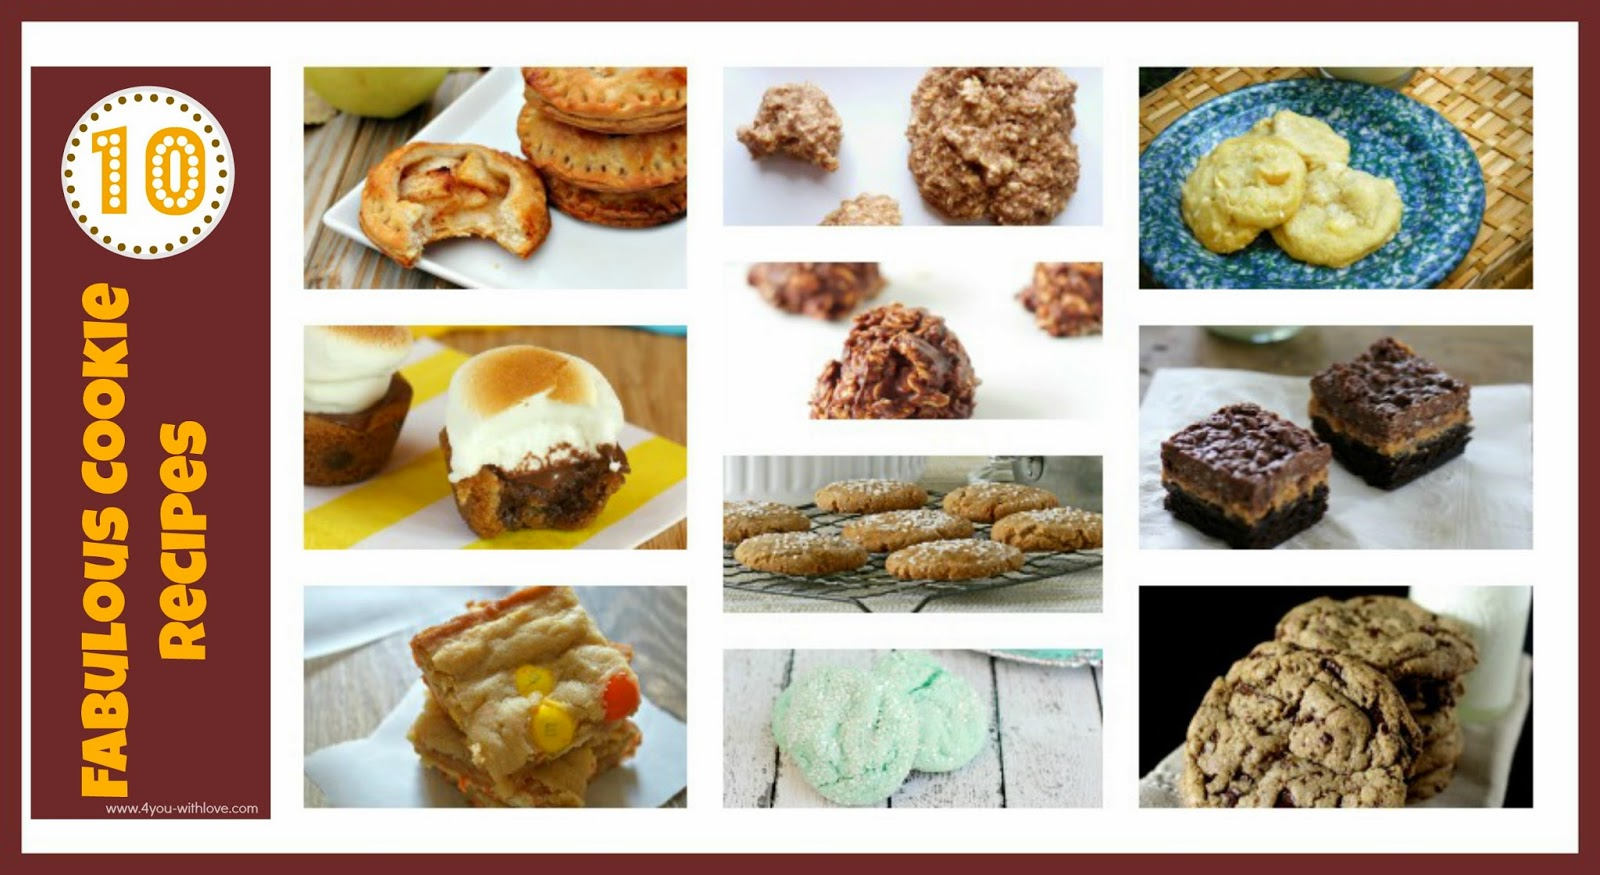 10 Fabulous Cookie Recipes AND a Kitchen Aid Mixer Giveaway!